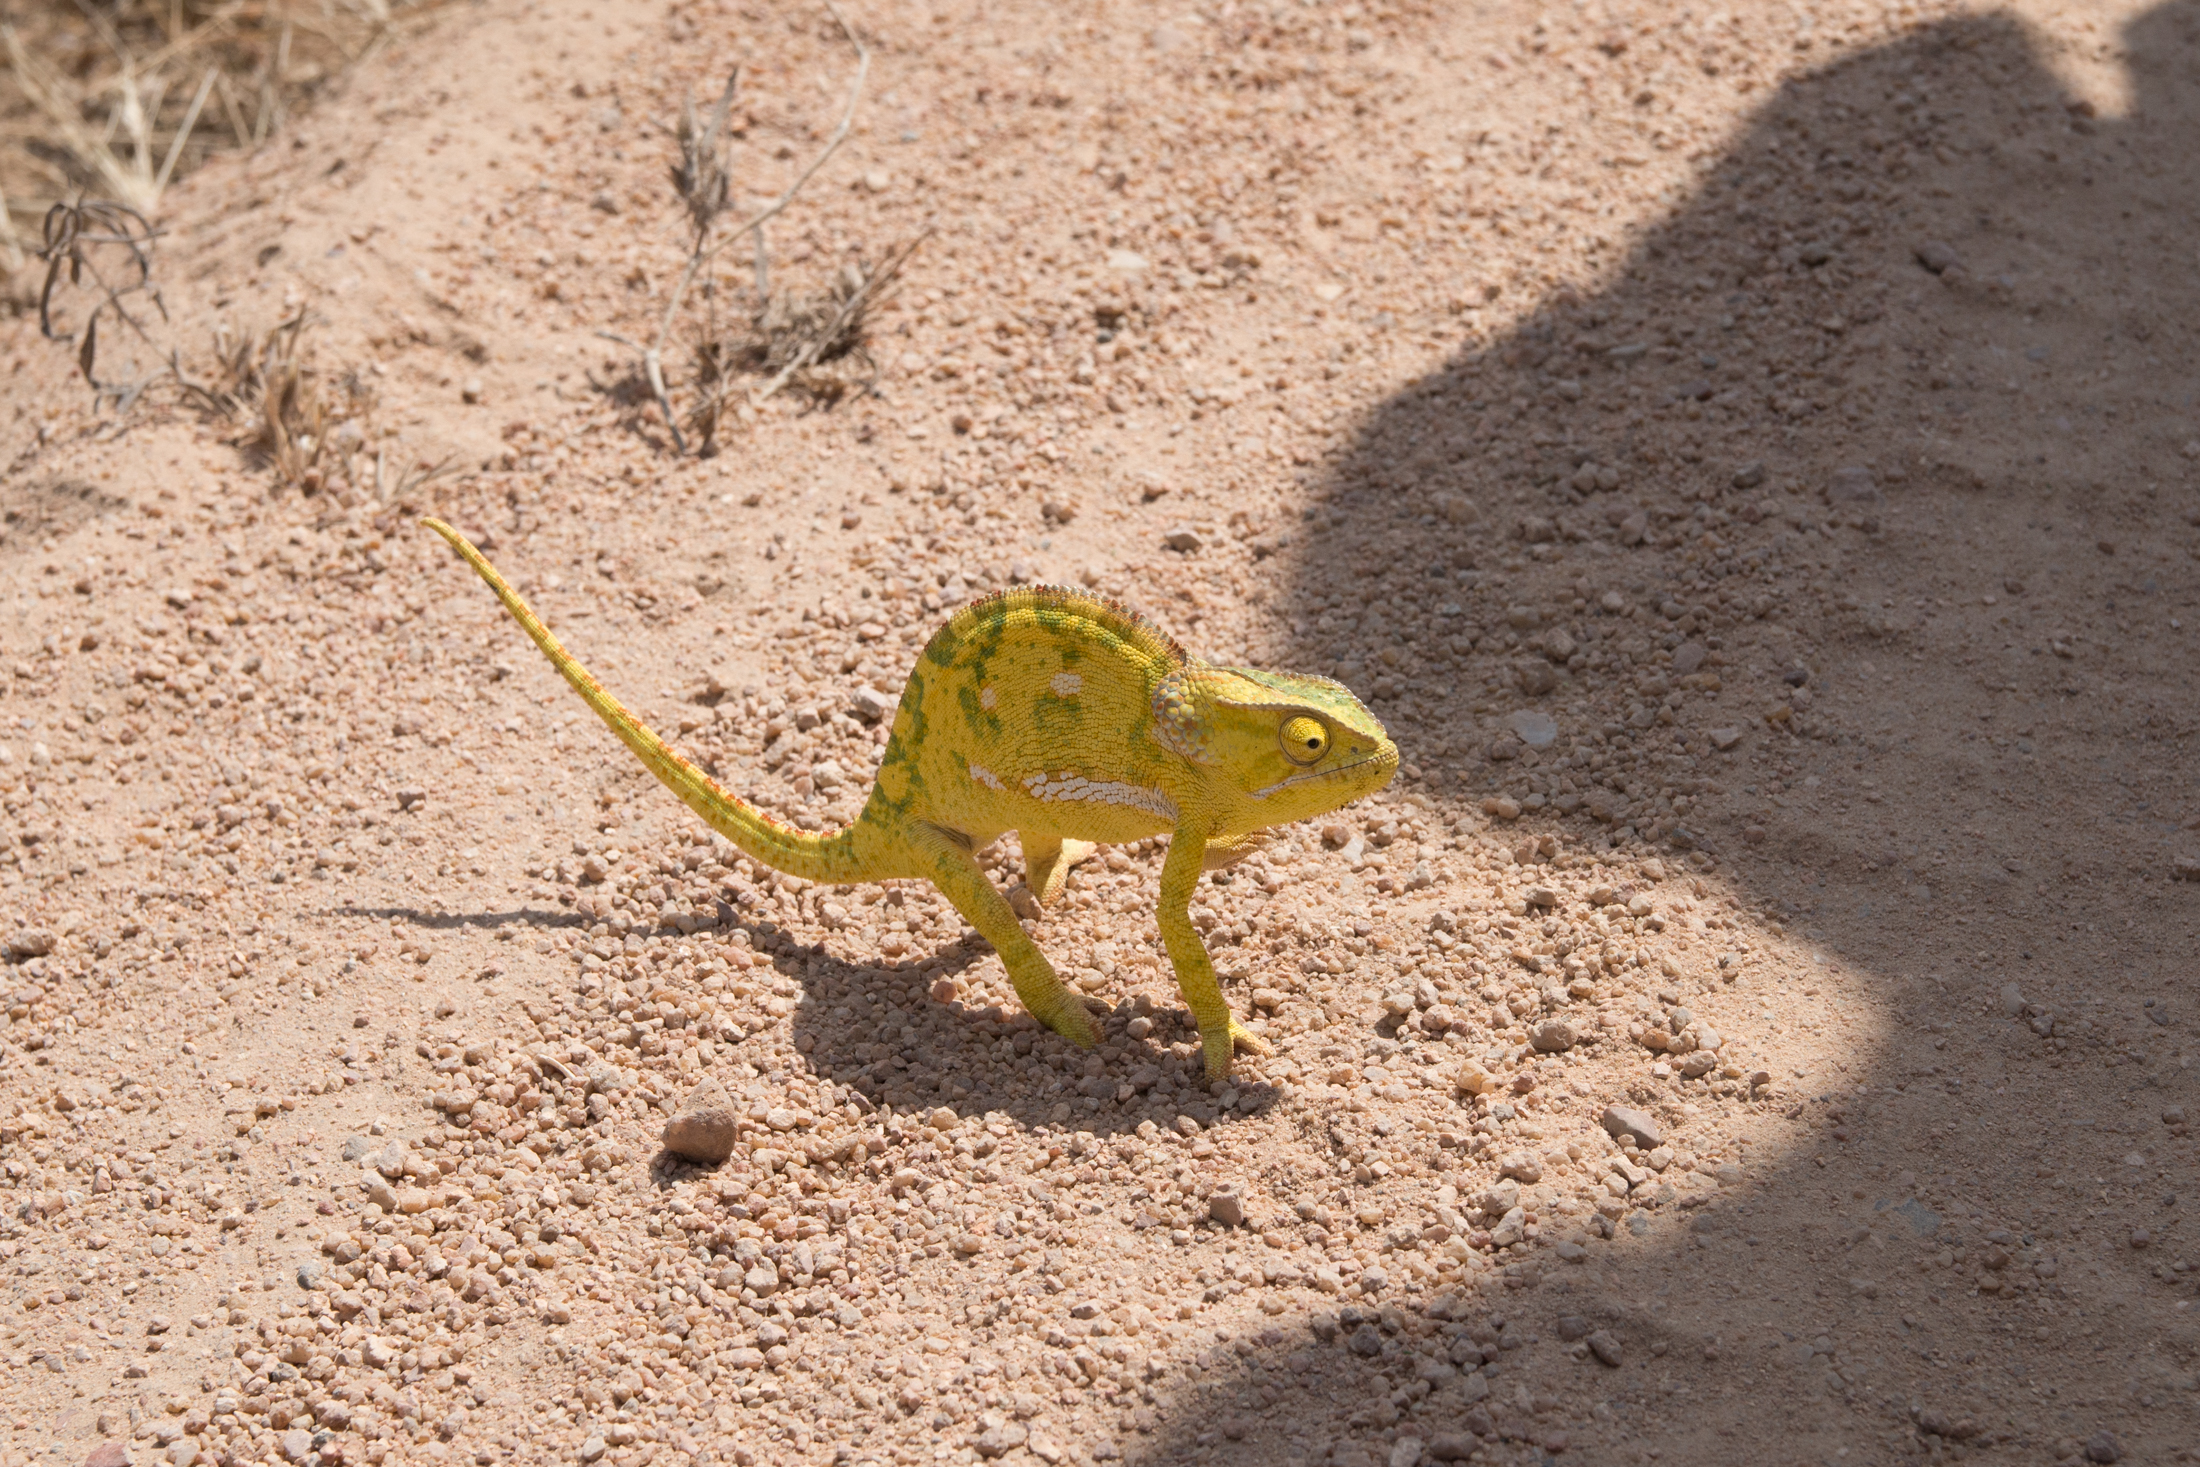 A chameleon avoids blending in order to look poisonous to predators. (Amar Batra/Daily Campus)